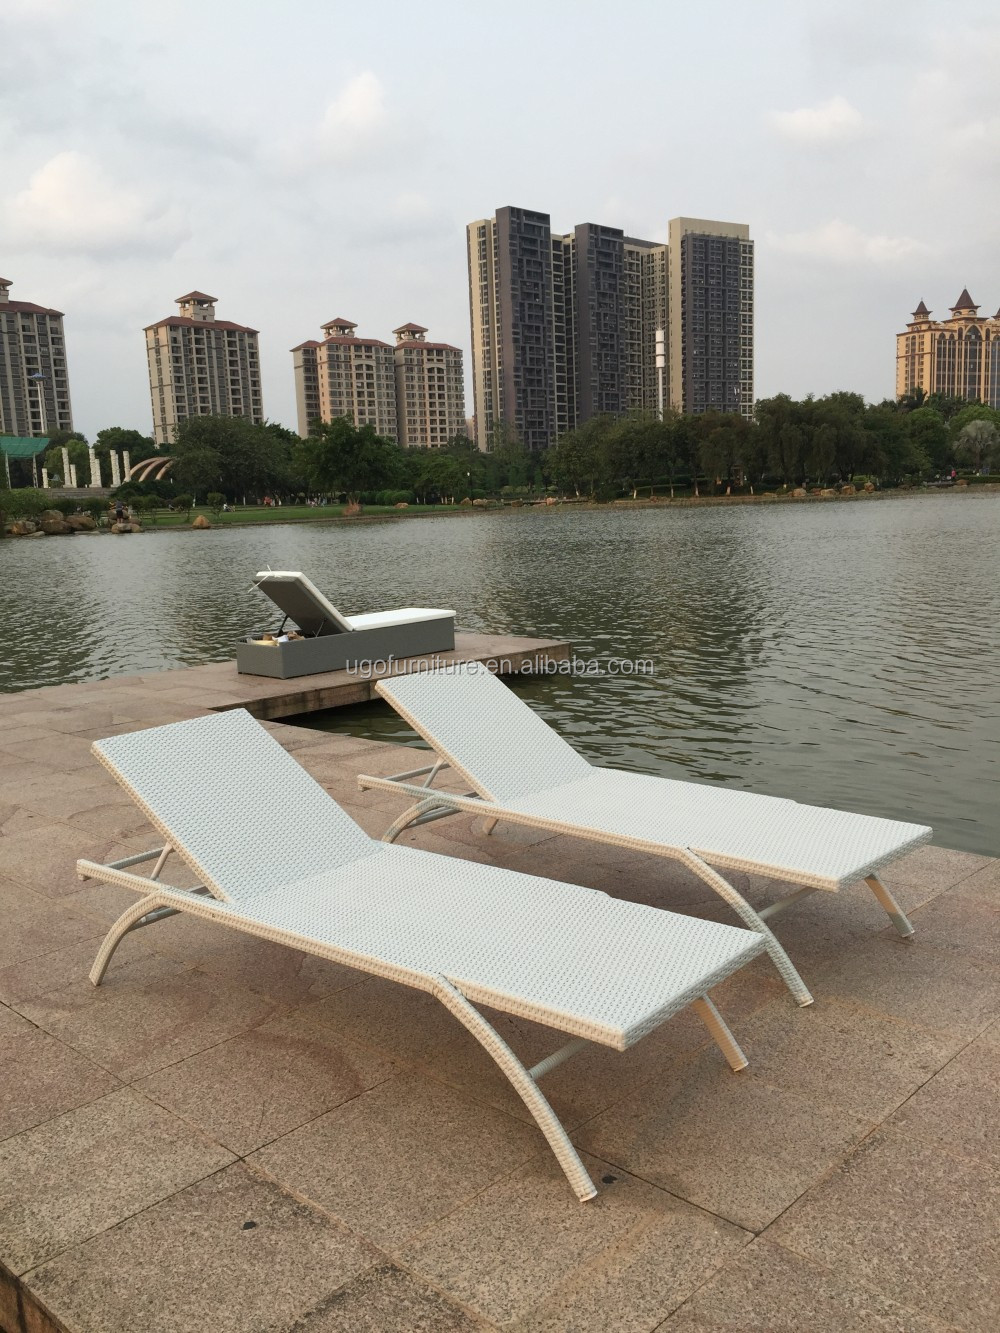 2016 new design double chaise lounges used outdoor rattan for Beach chaise lounge